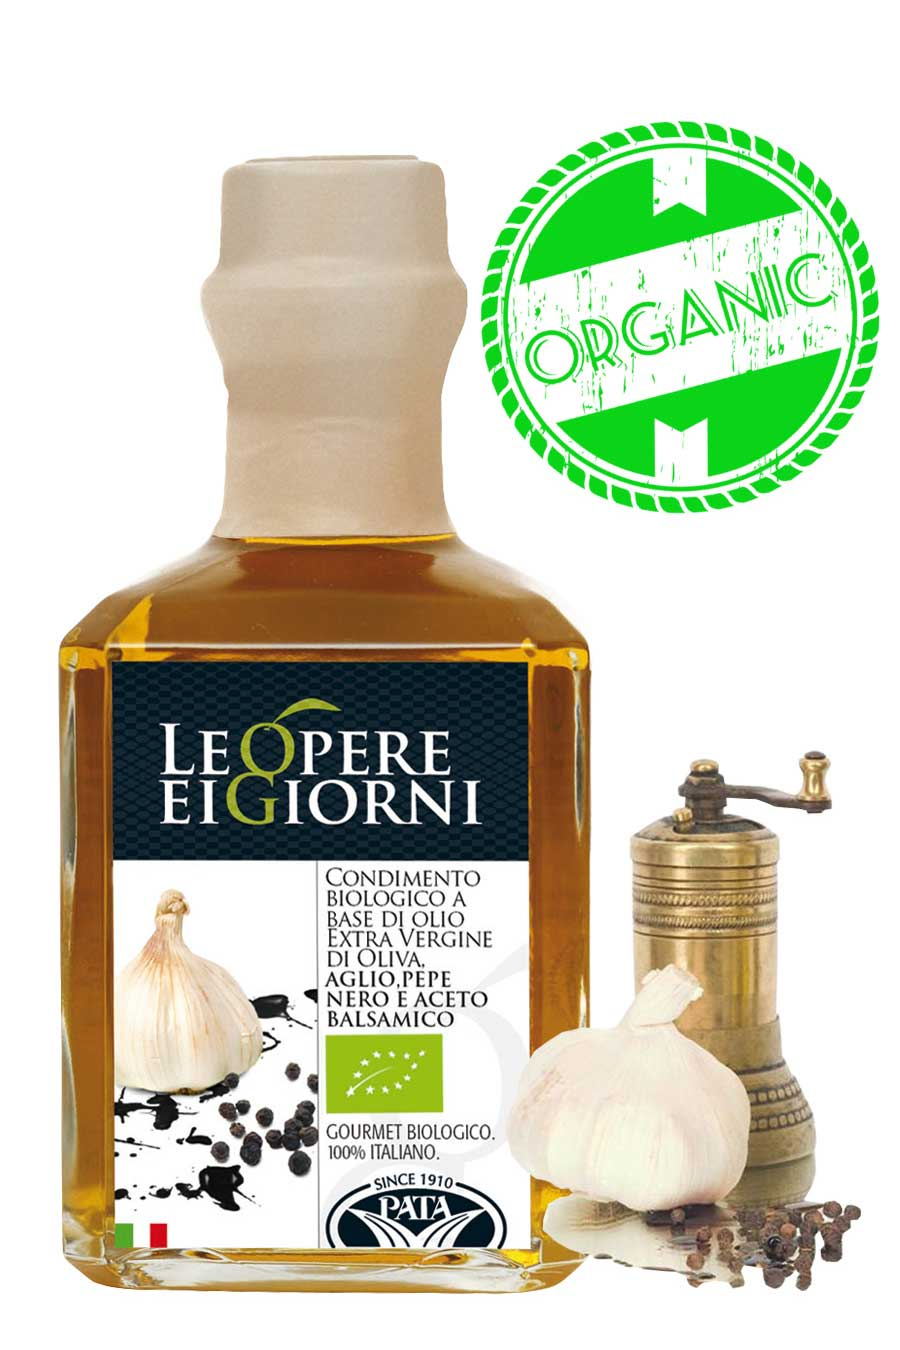 Organic Garlic Black Pepper and Balsamic infused Olive Oil 250ml - Agrumia